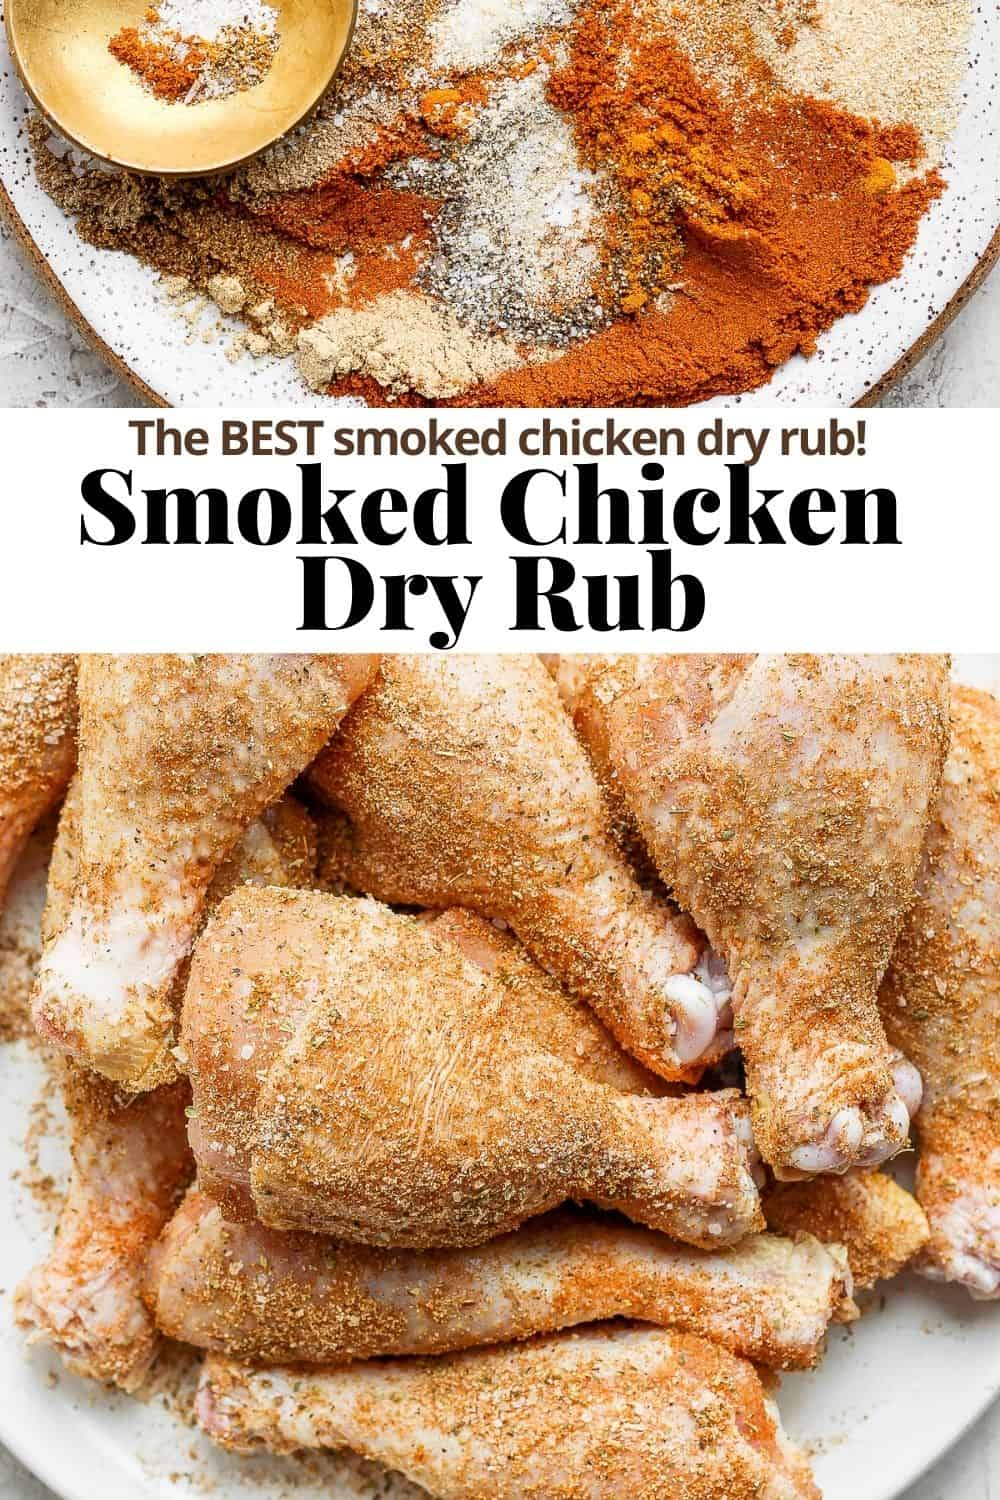 Pinterest pin for smoked chicken dry rub.